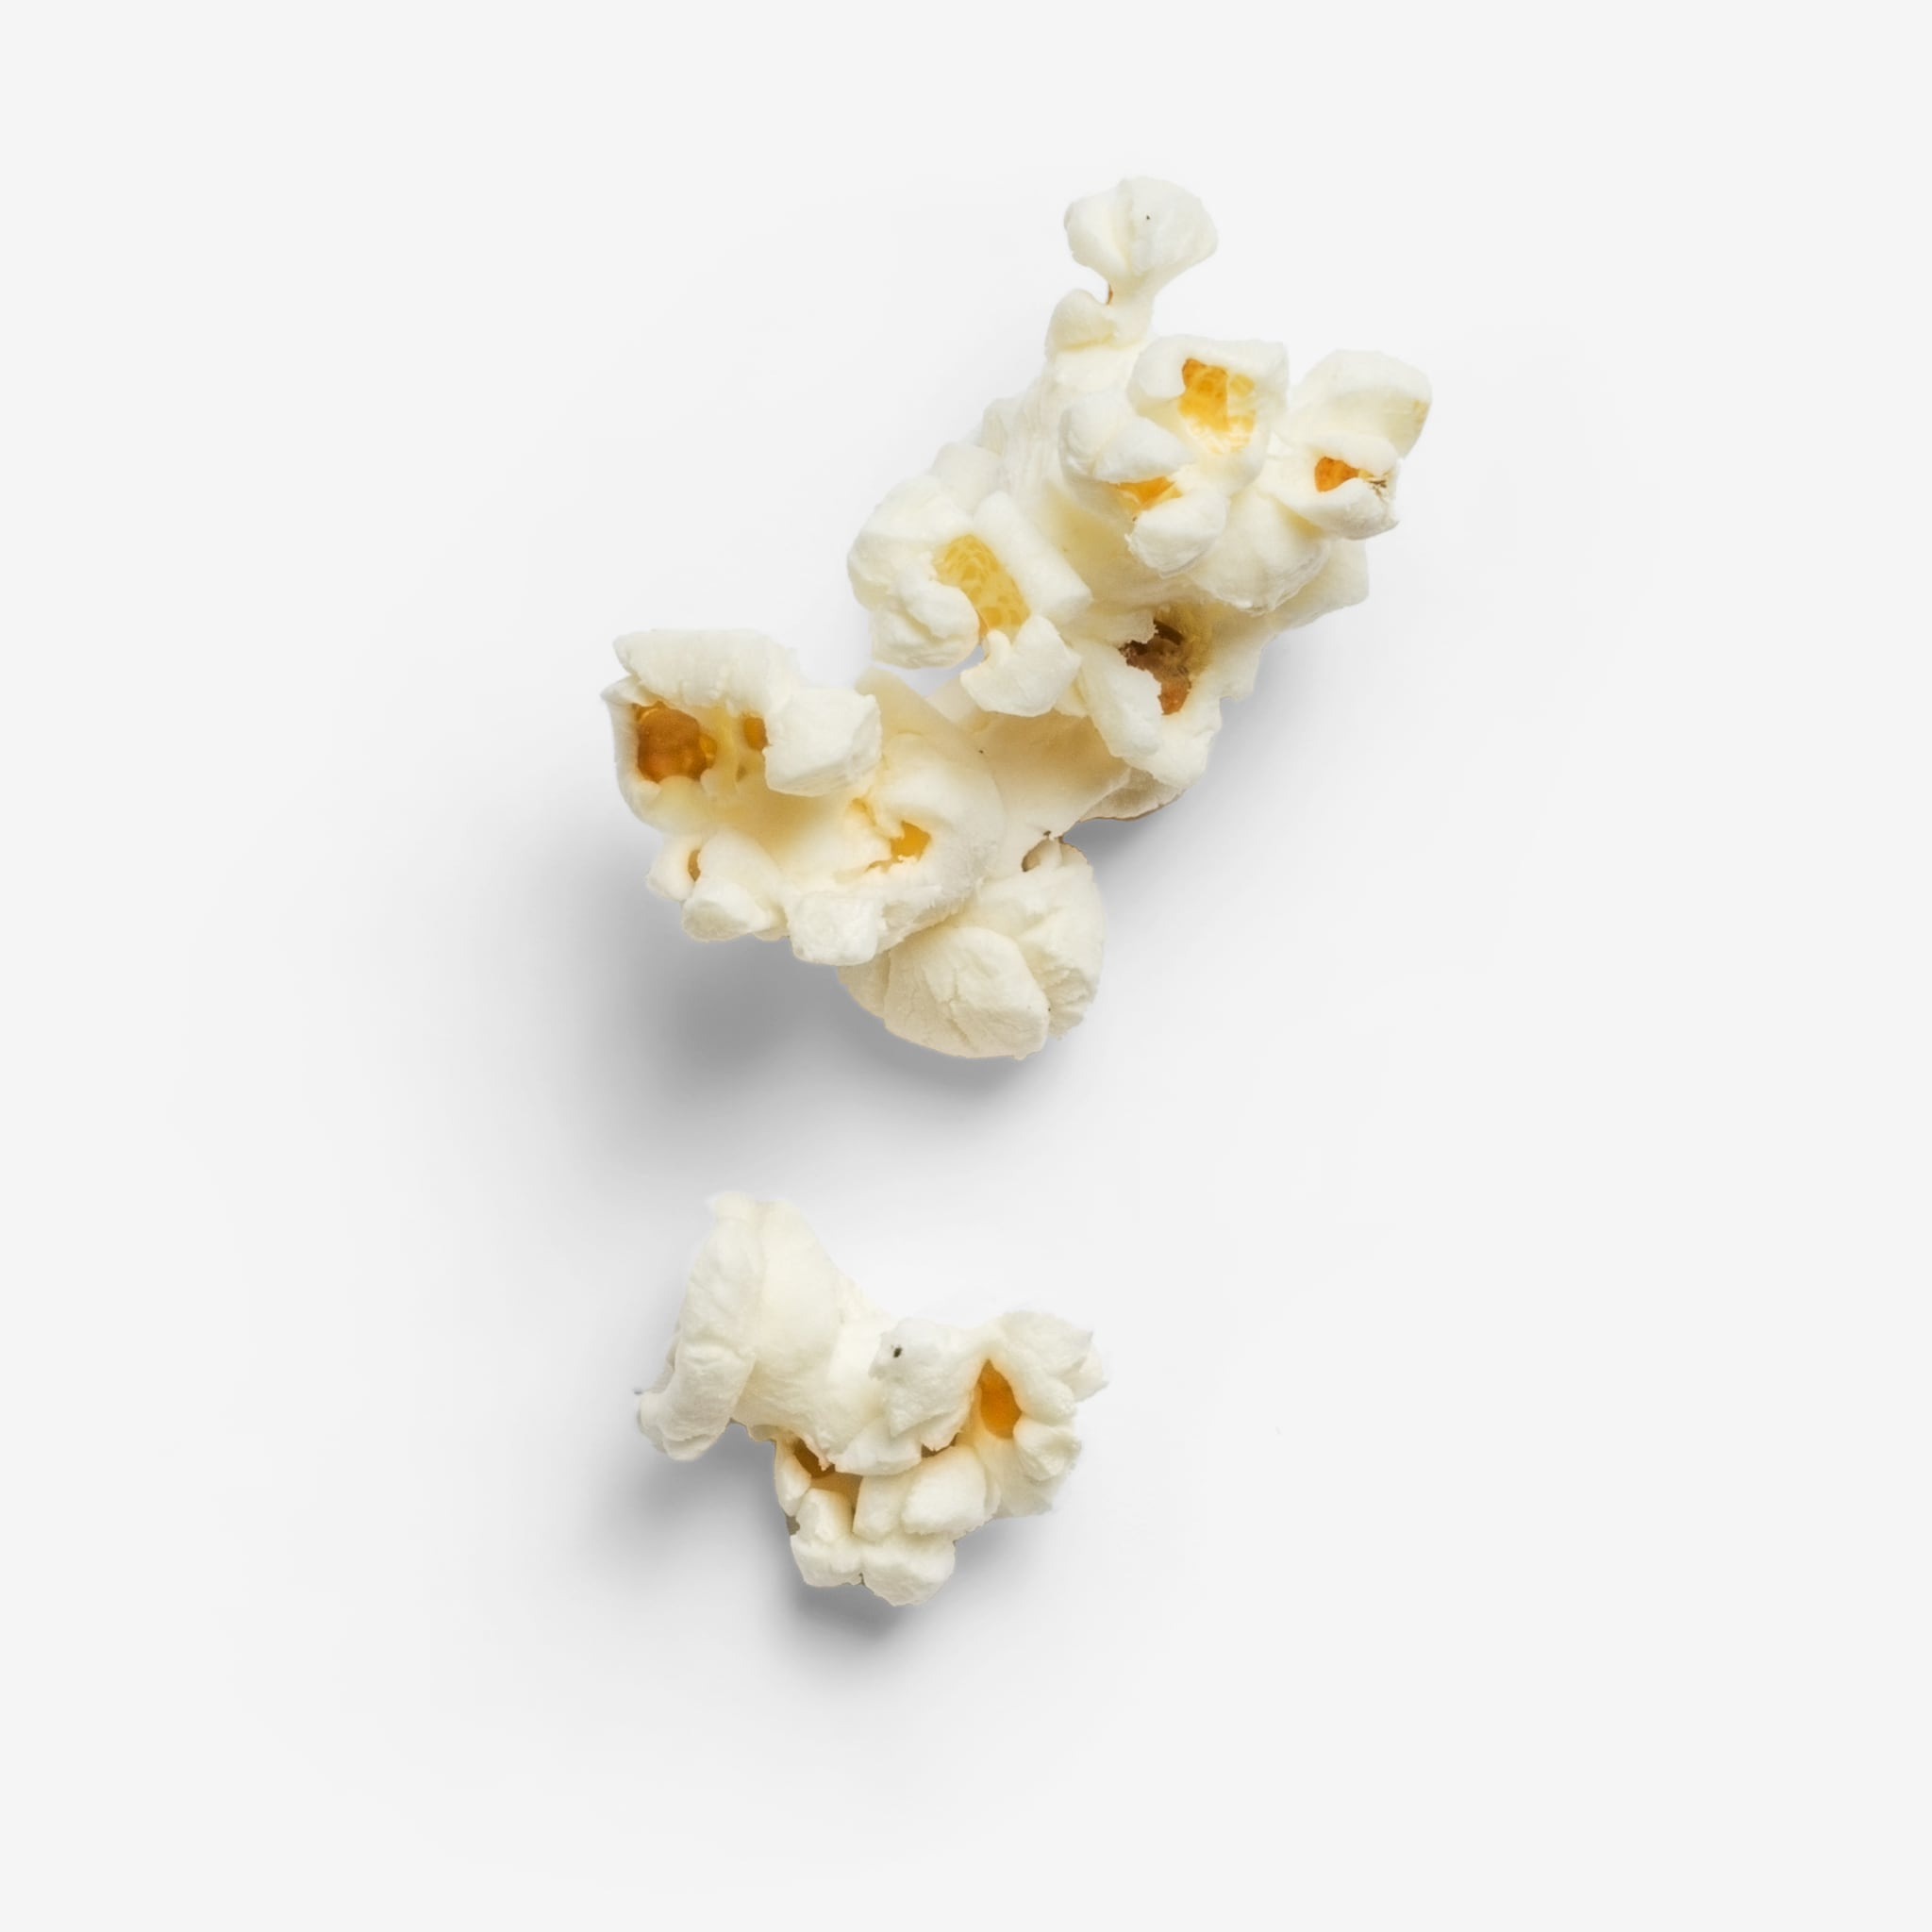 Popcorn PSD image with transparent background